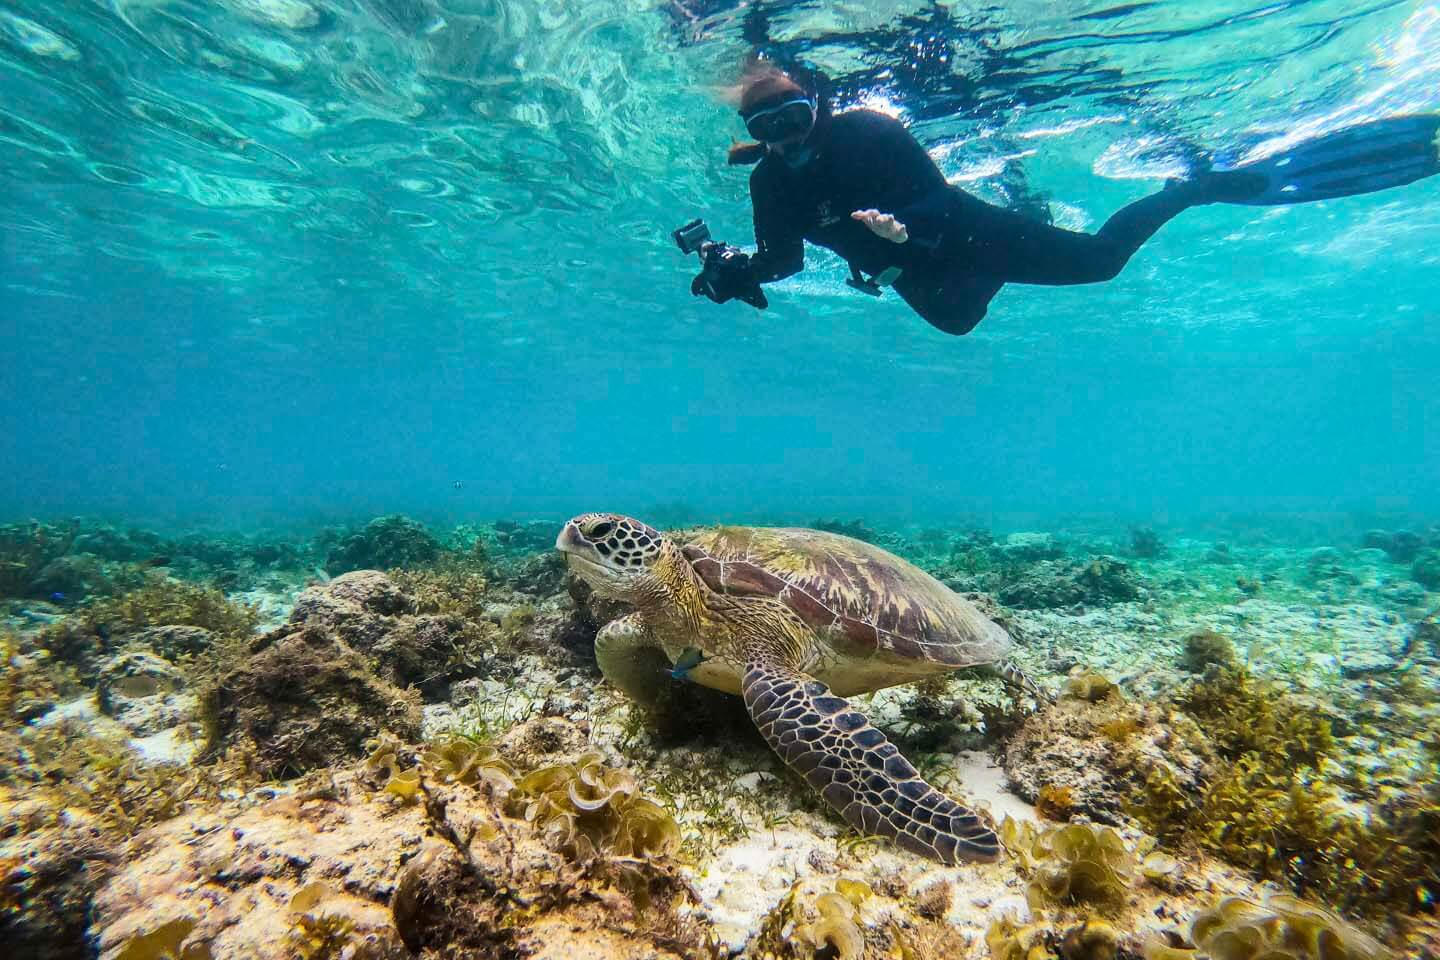 Snorkeling with Turtles in Moalboal